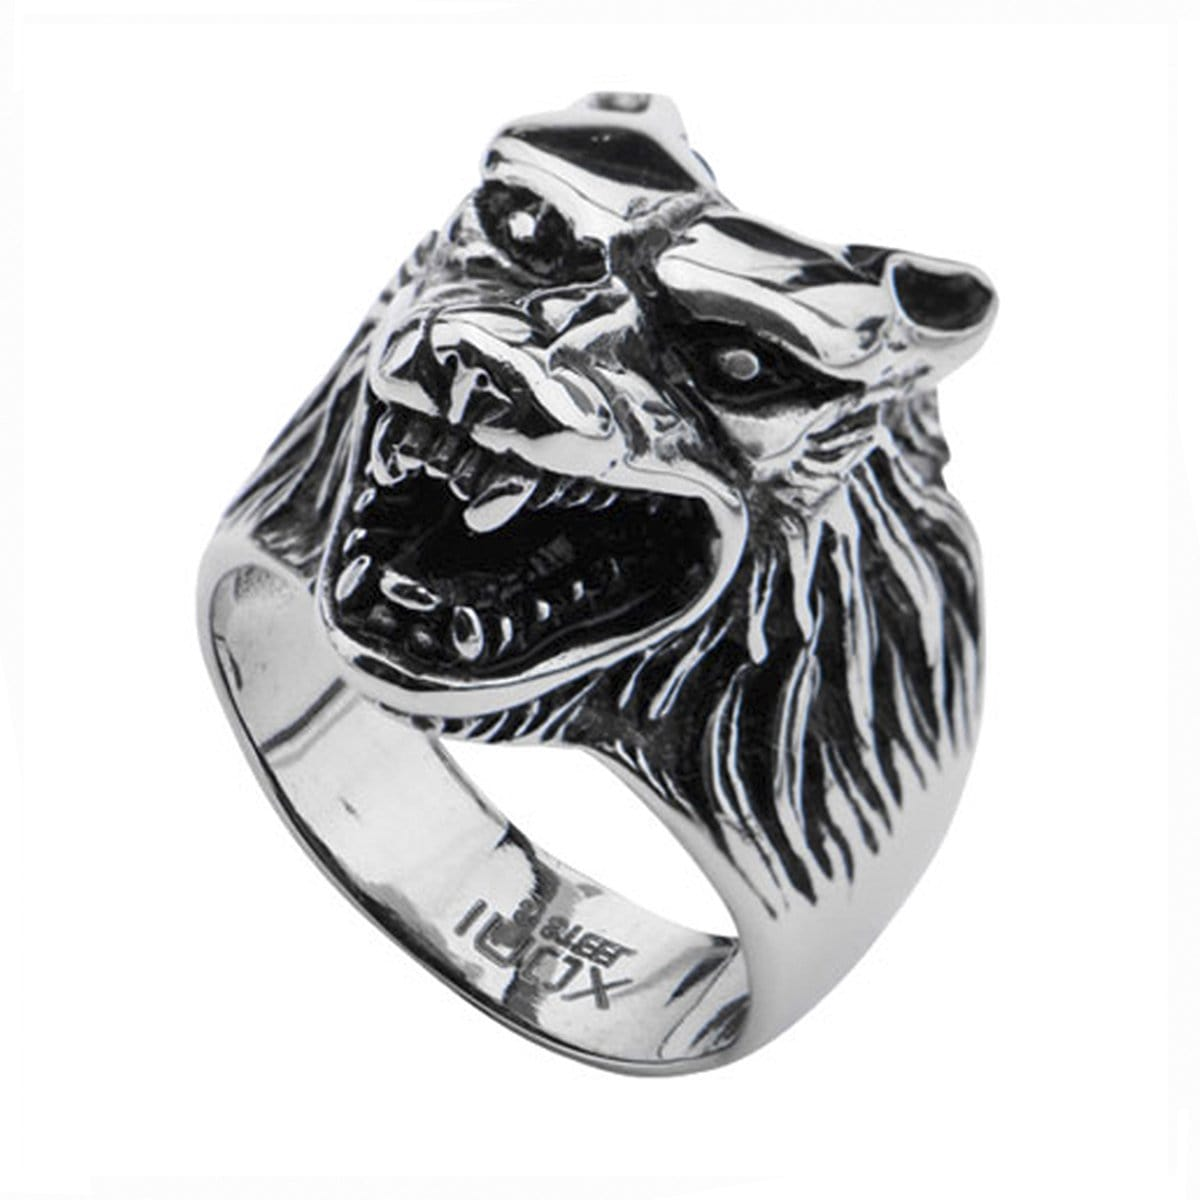 Darkened Silver Stainless Steel Growling Wolf Ring Rings